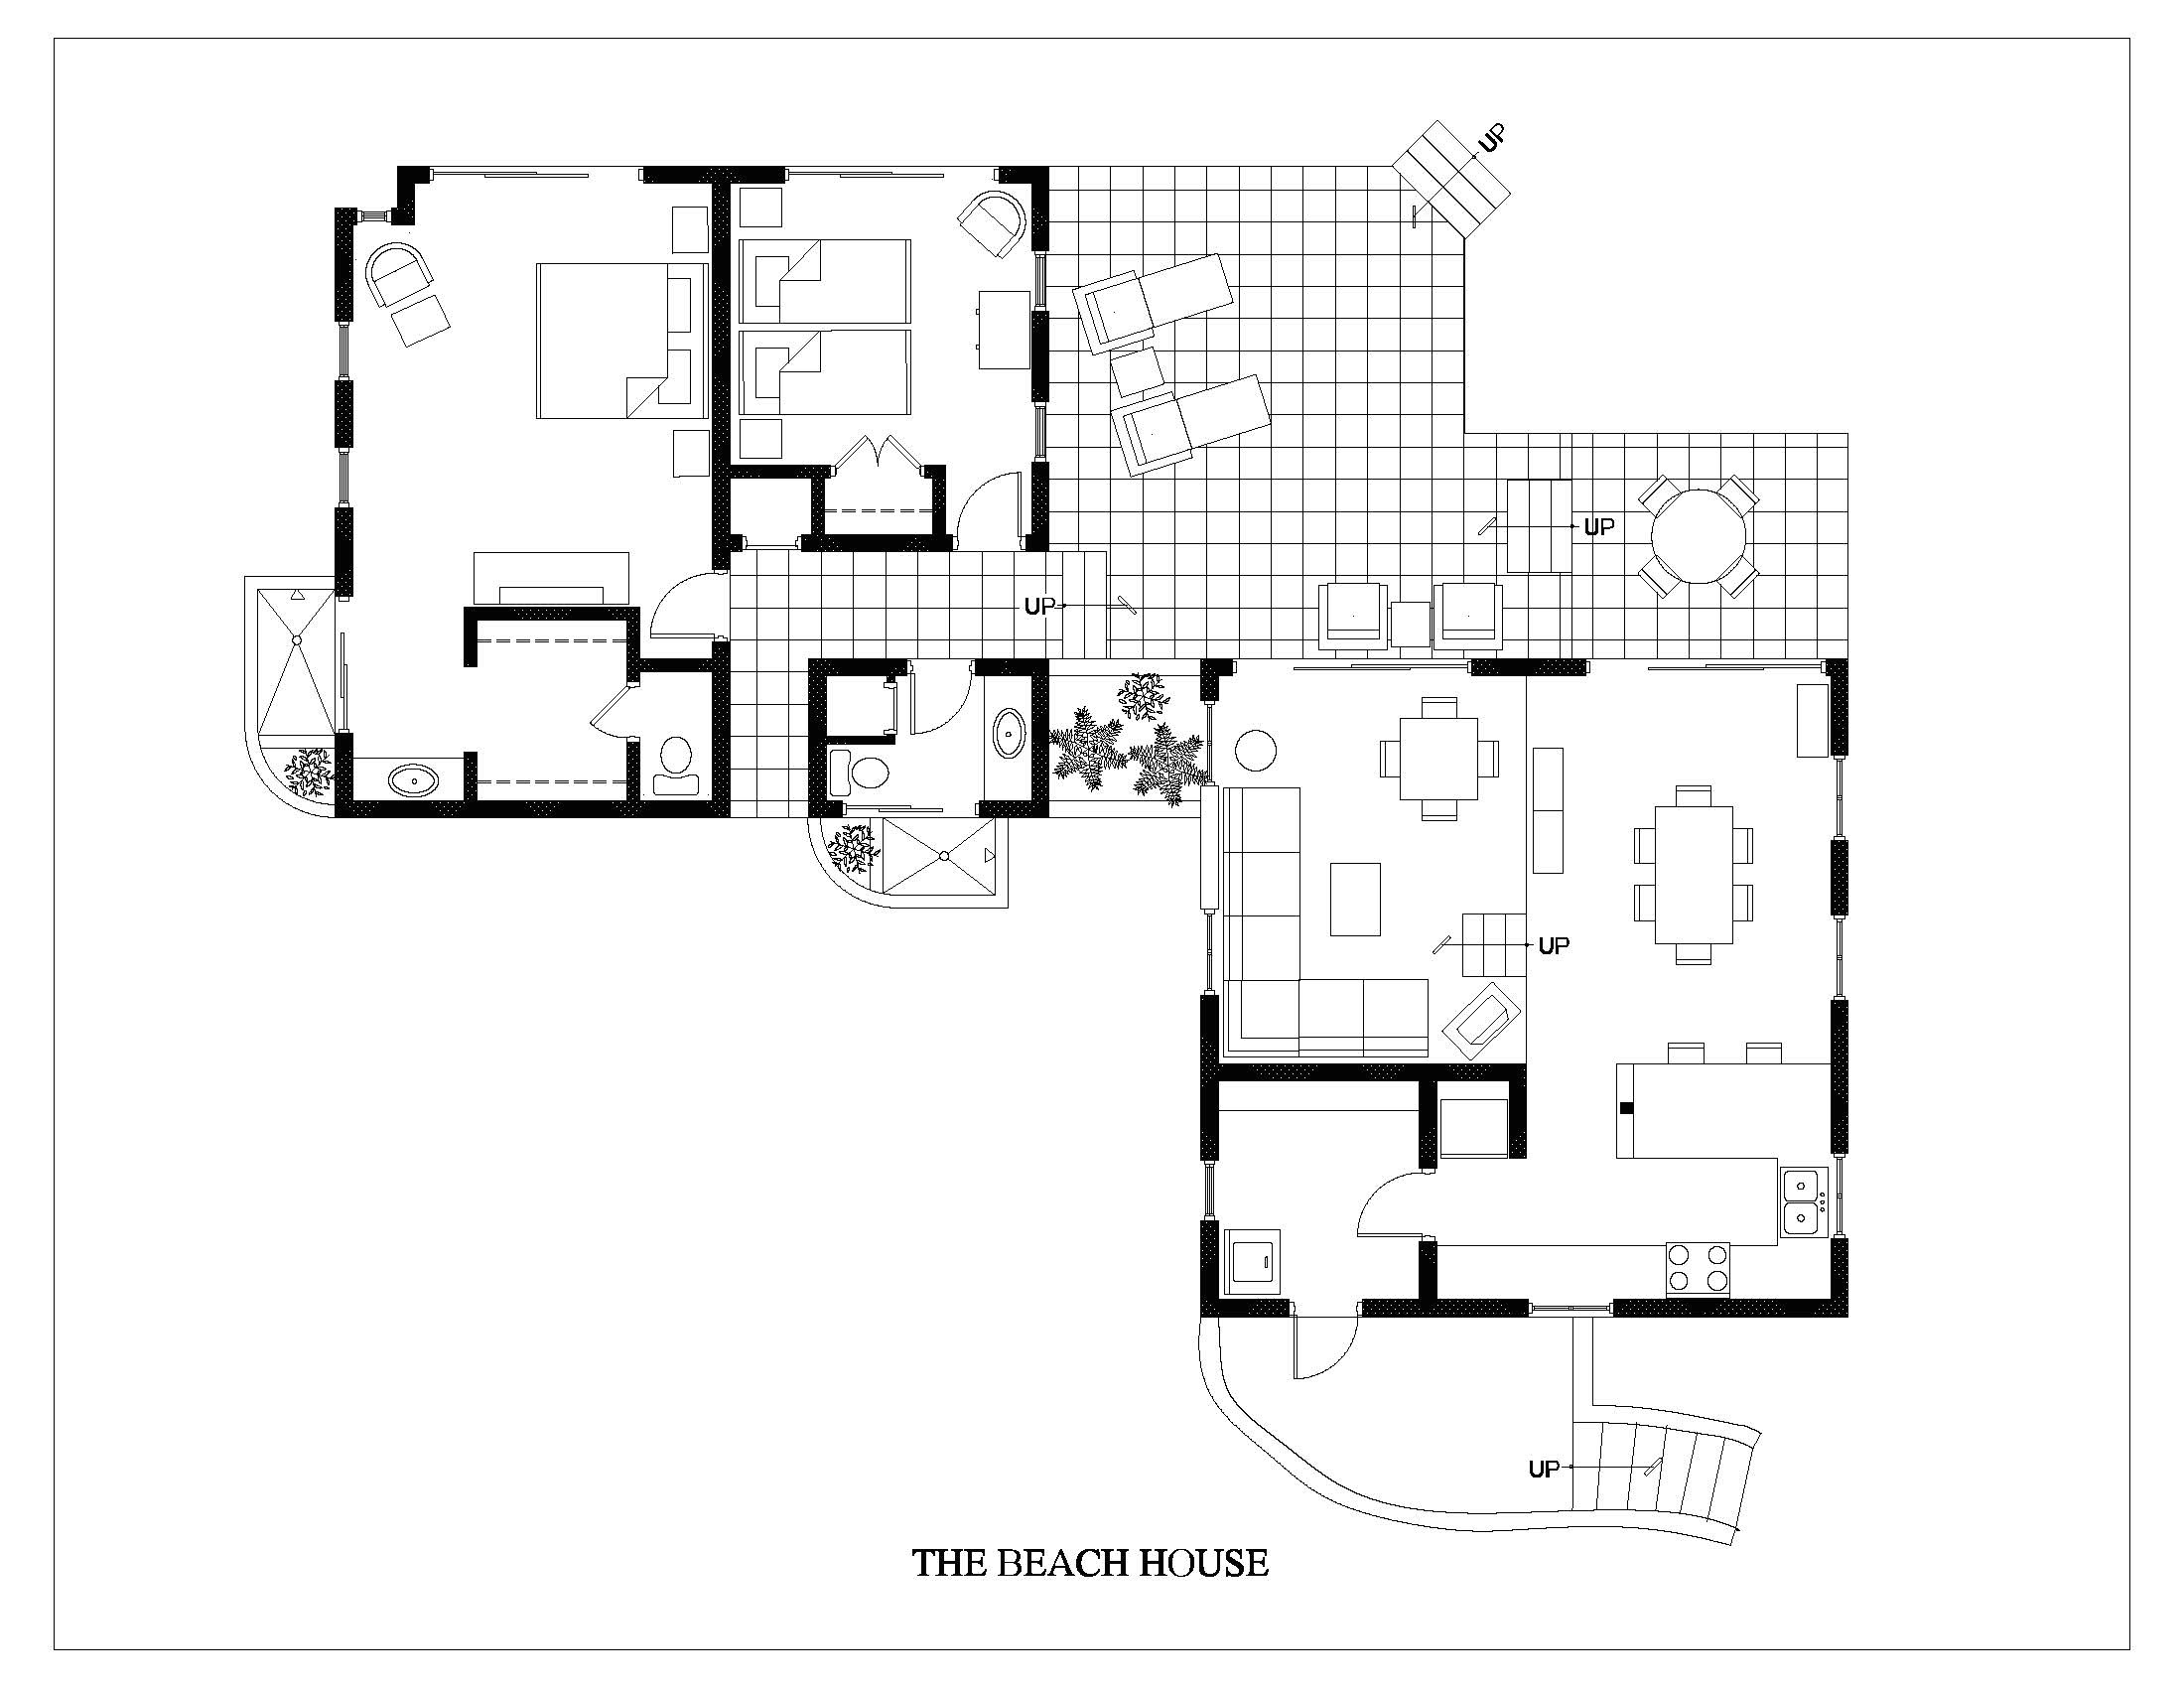 quoteko com beachhousefloorplan